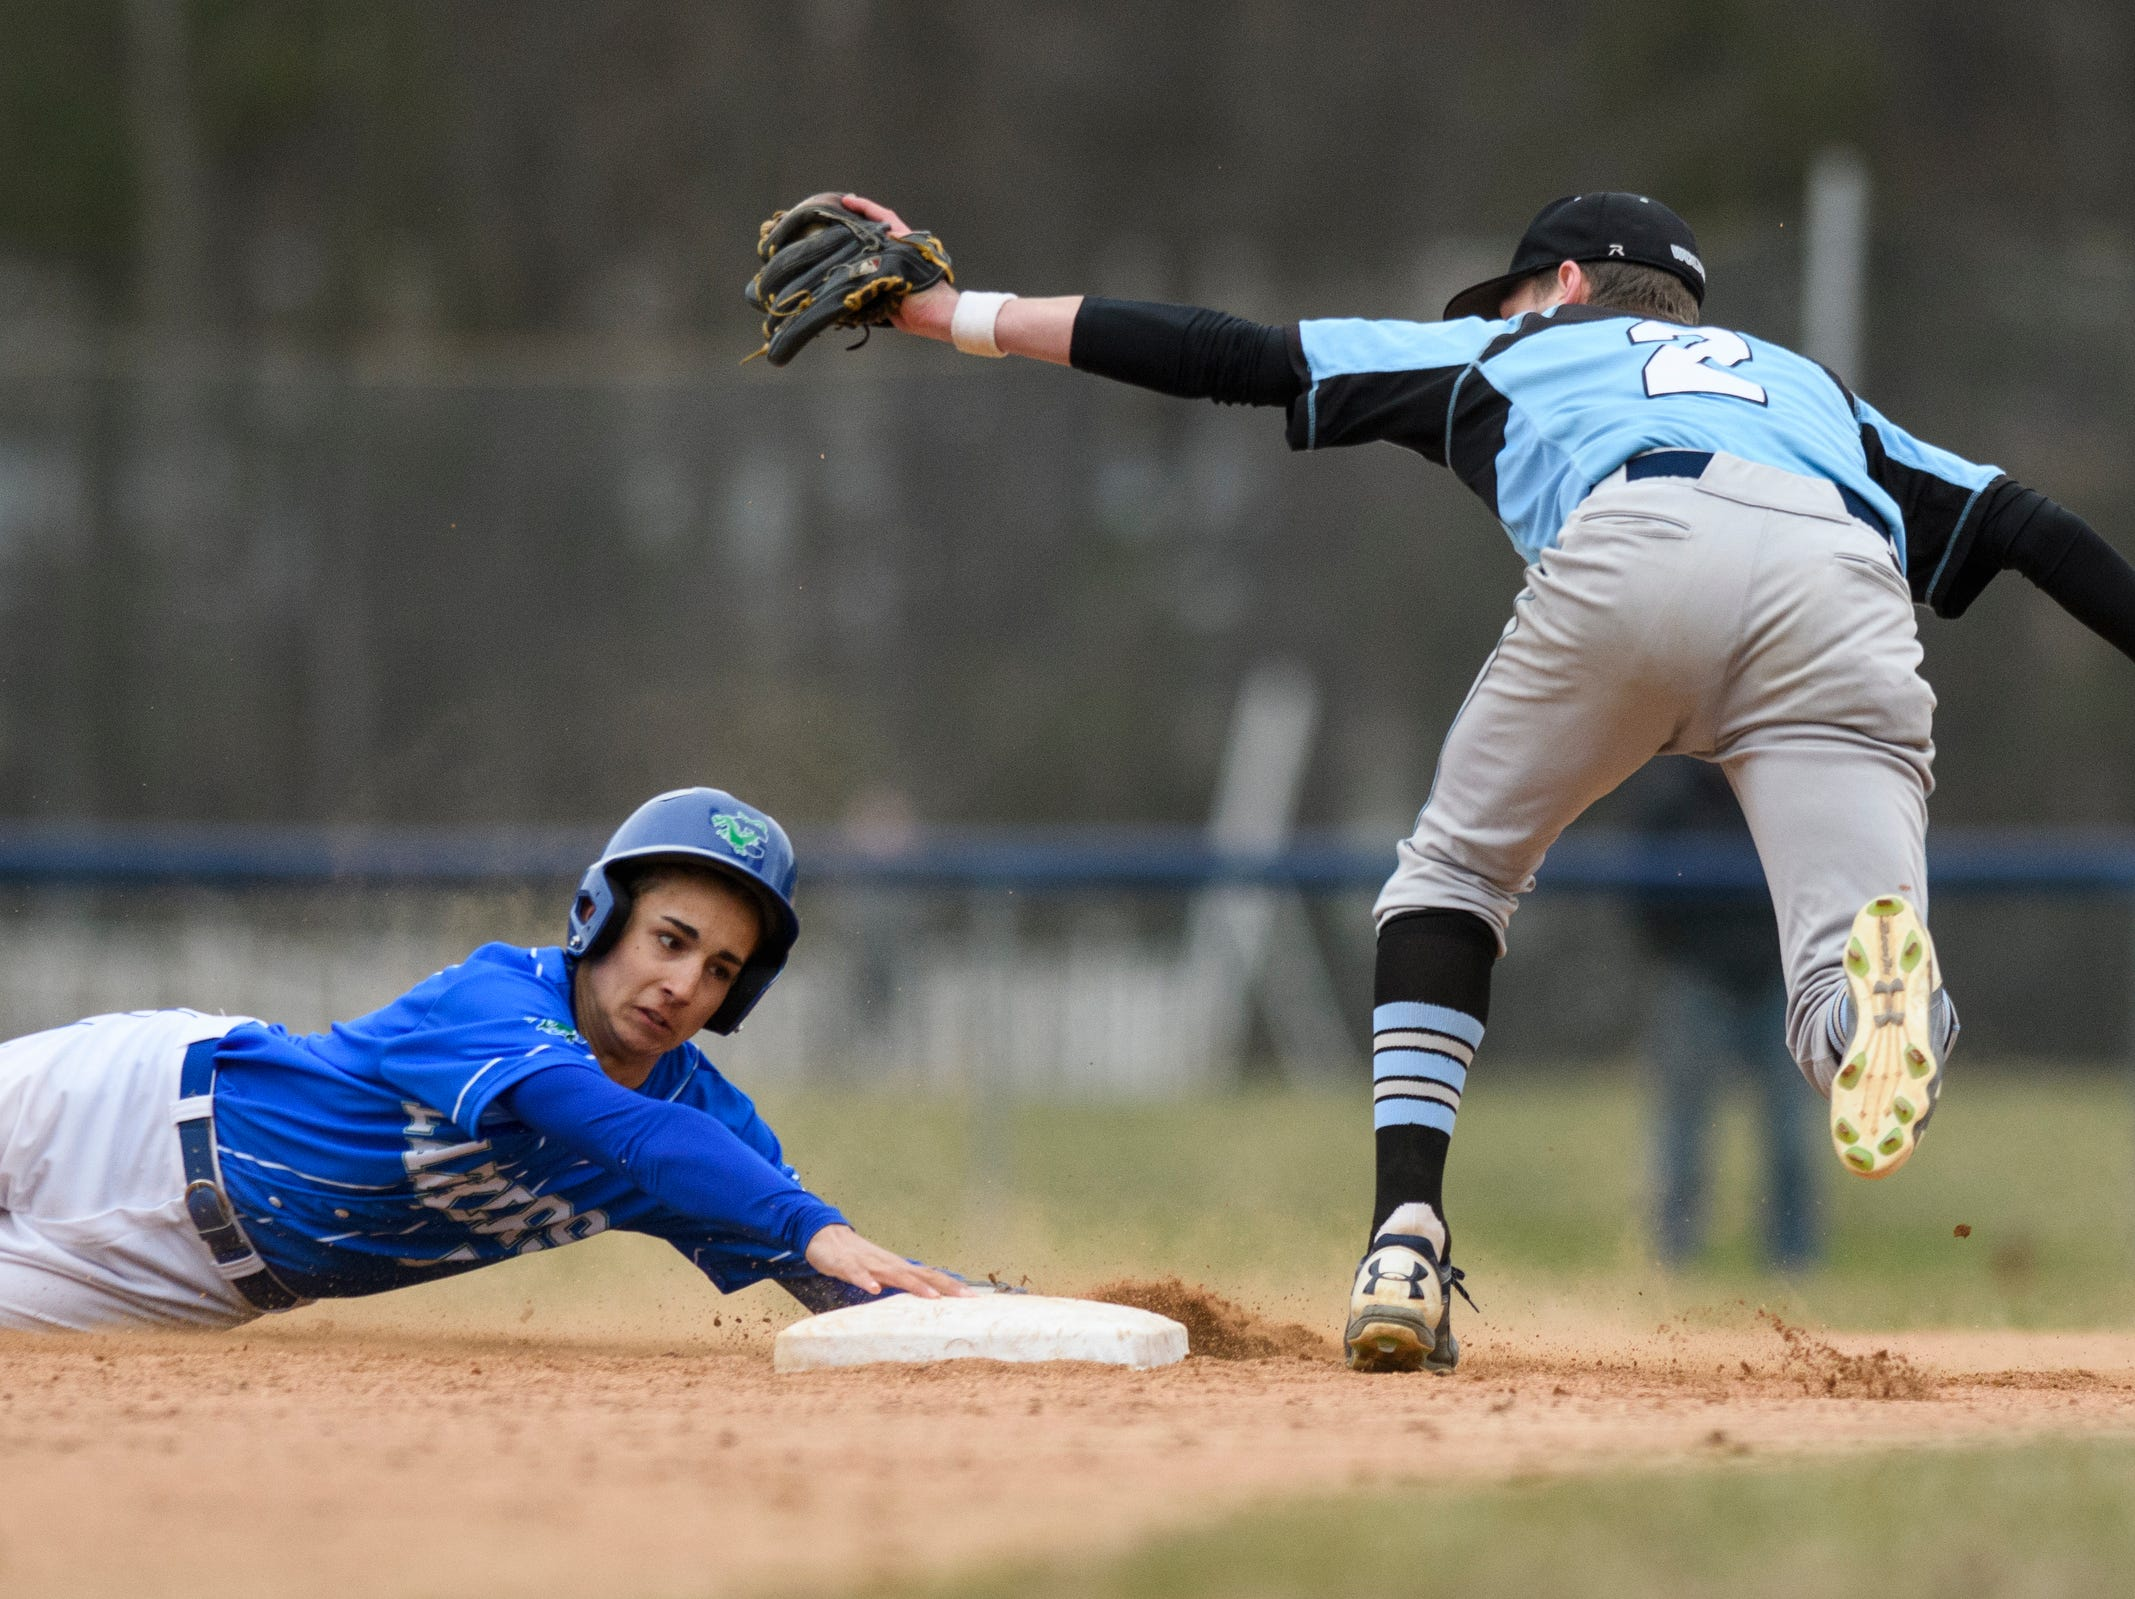 Colchester's Saul Minaya (3) slides past second base as South Burlington's Nolan Antonicci (2) trees to tag him during the boys baseball game between the South Burlington Wolves and the Colchester Lakers at Colchester high school on Thursday afternoon April 18, 2019 in Colchester, Vermont.